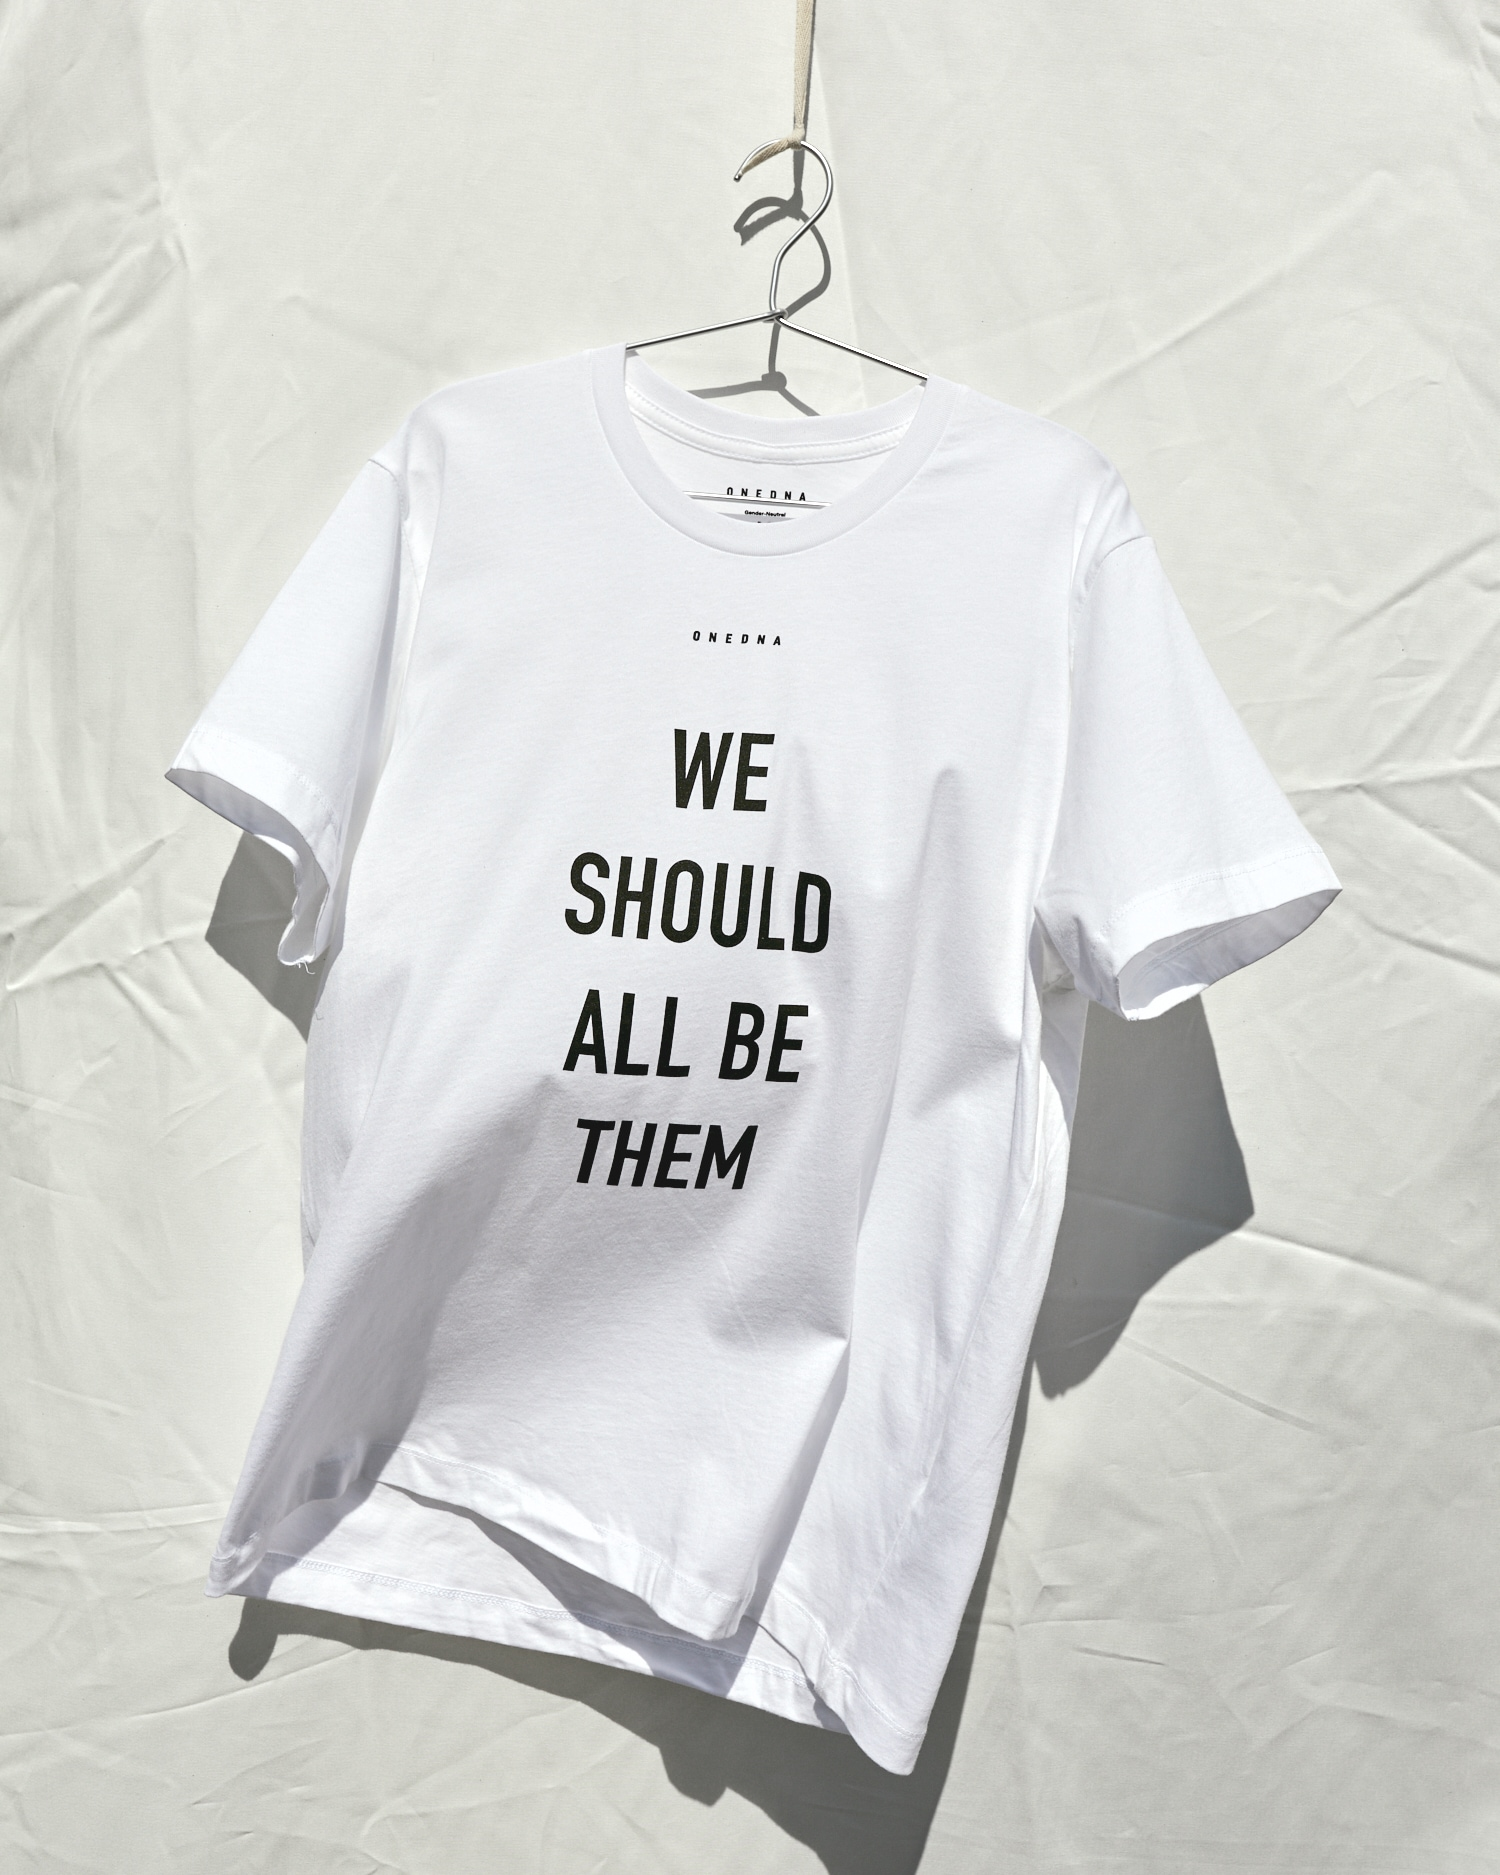 Shop Designer T-Shirt By New York Brand One DNA. We Should All Be Them.